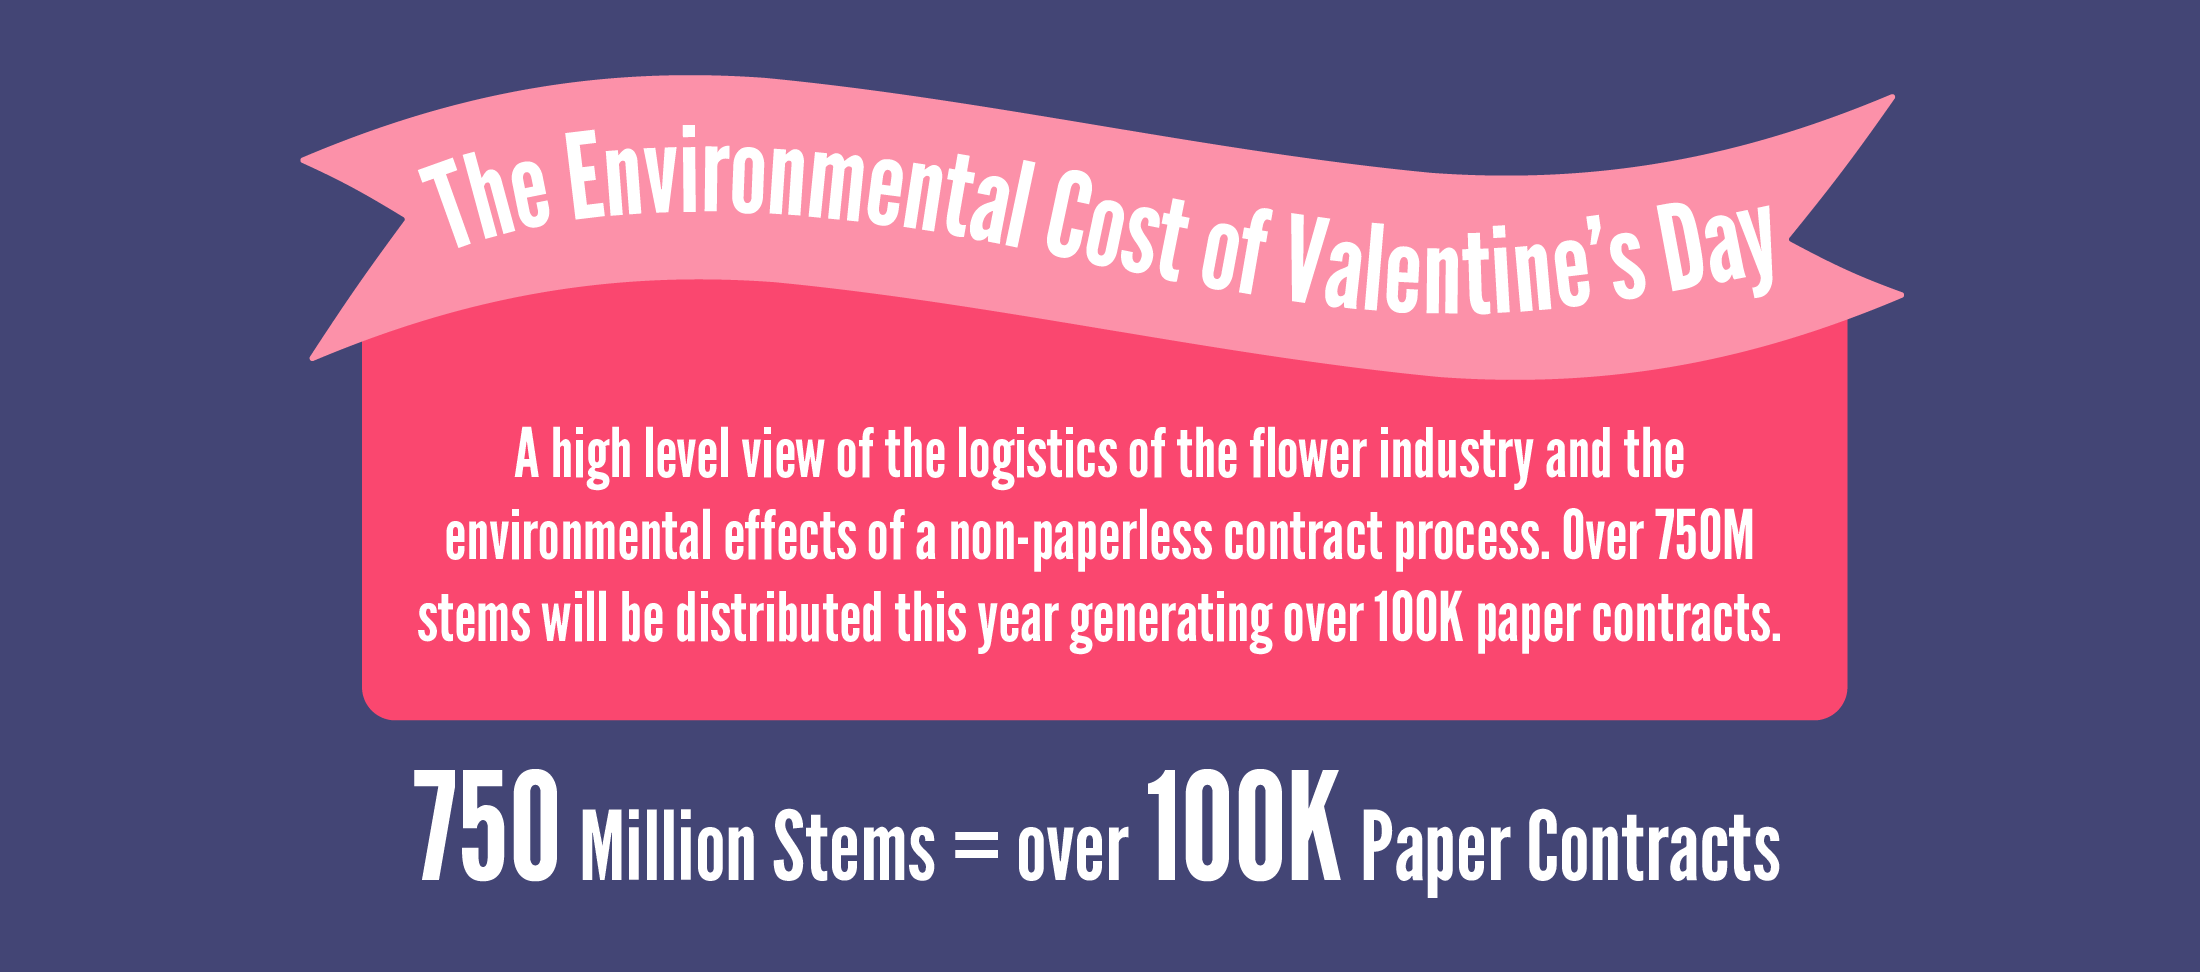 Valentine's day environmental cost infographic